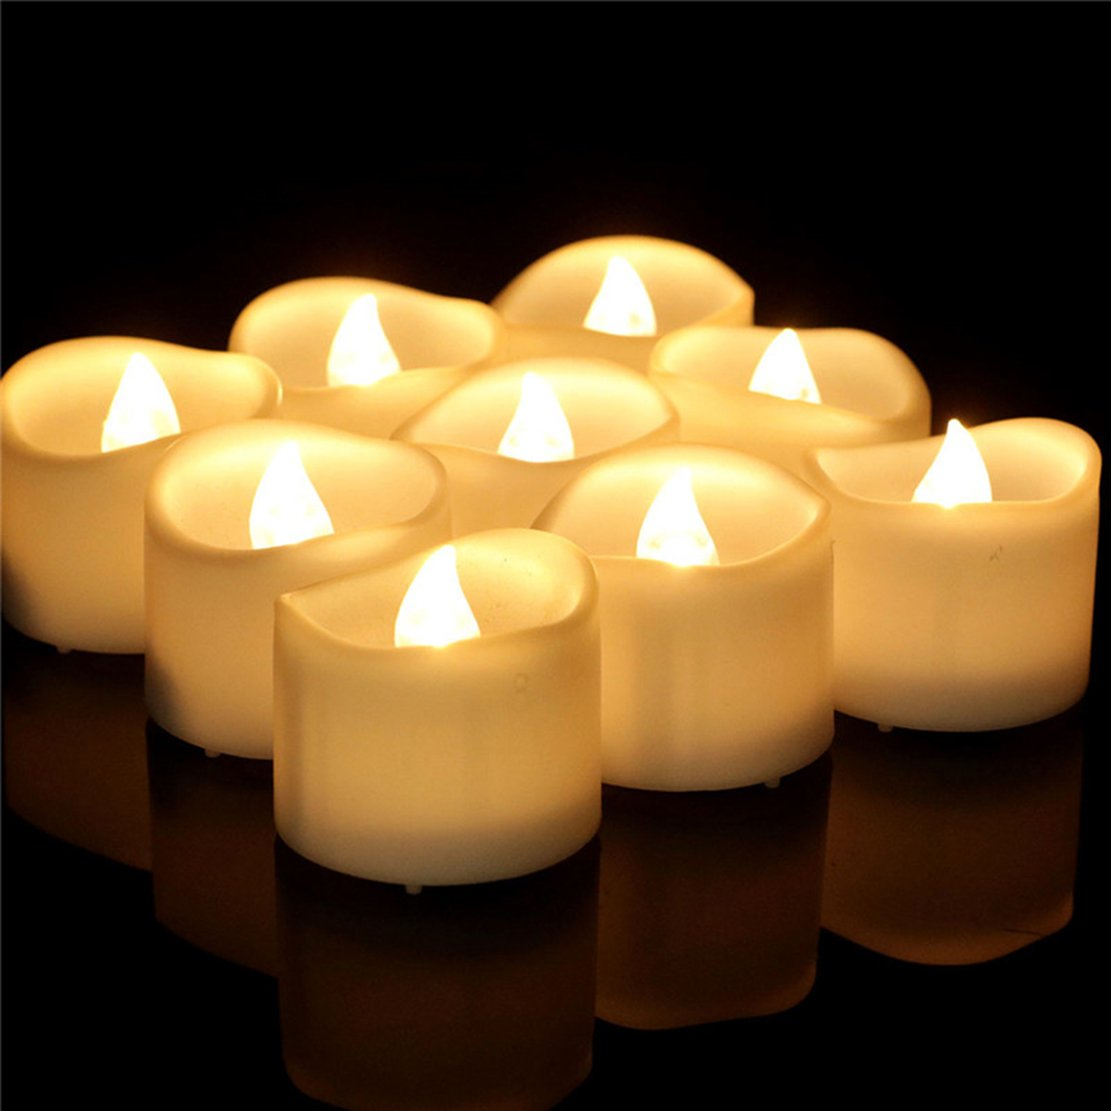 200 Hours Led Mini Tea Light with Timer (6 Hrs On 18 Hrs Off) Flameless Warm White Flickering Fake Votive Candle Wavy Open Rustic Long Lasting Electric Timed Tealights Party Home Wedding Decor 96 PCS by Beauty Collector (Image #5)